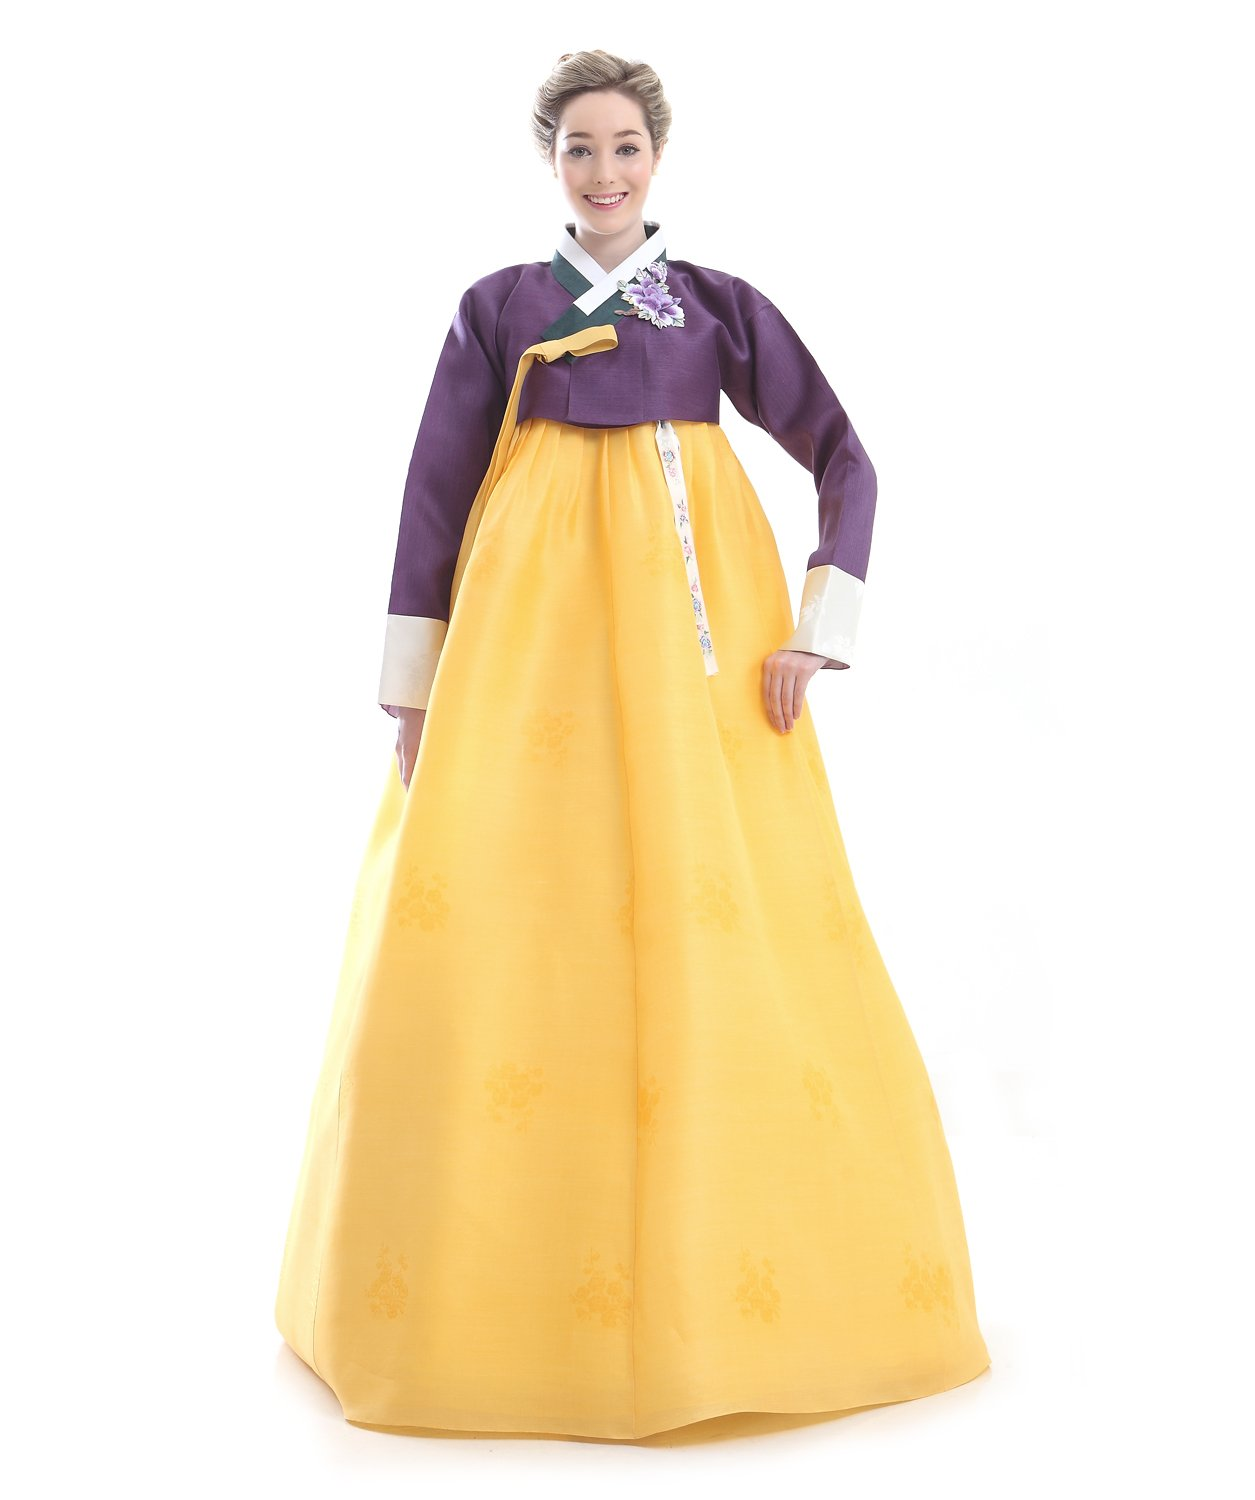 Handgemachter 100% Seide Kleid Hanbok Korea Lang Tracht Gelb Design Umbund Party Dress Kleid Elegant Fashion Mode Neu